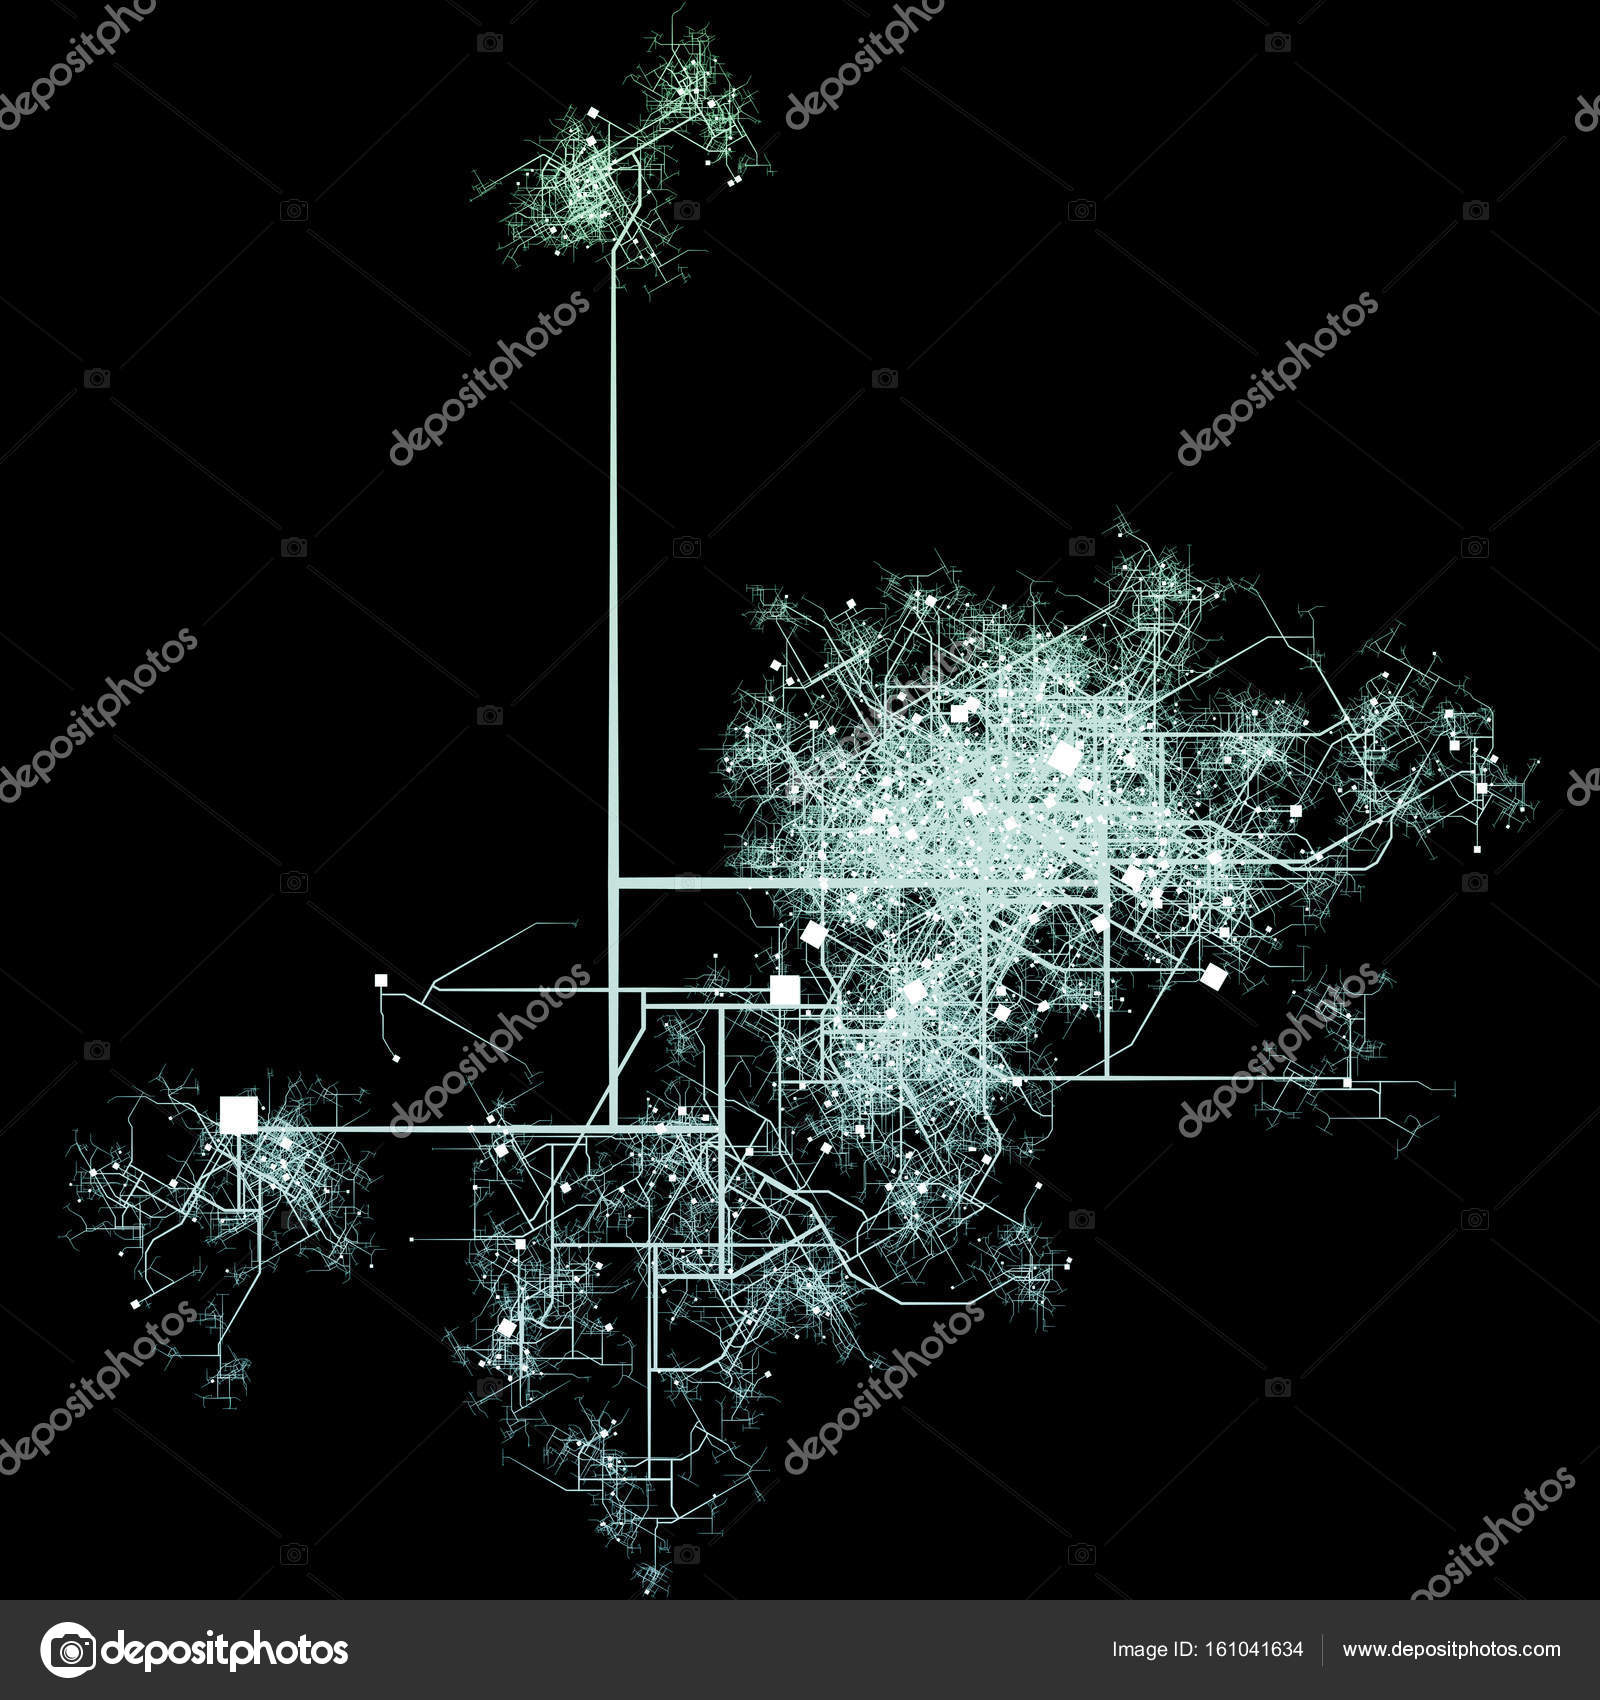 City blueprints concept art stock photo kentoh 161041634 city blueprints concept art stock photo malvernweather Gallery